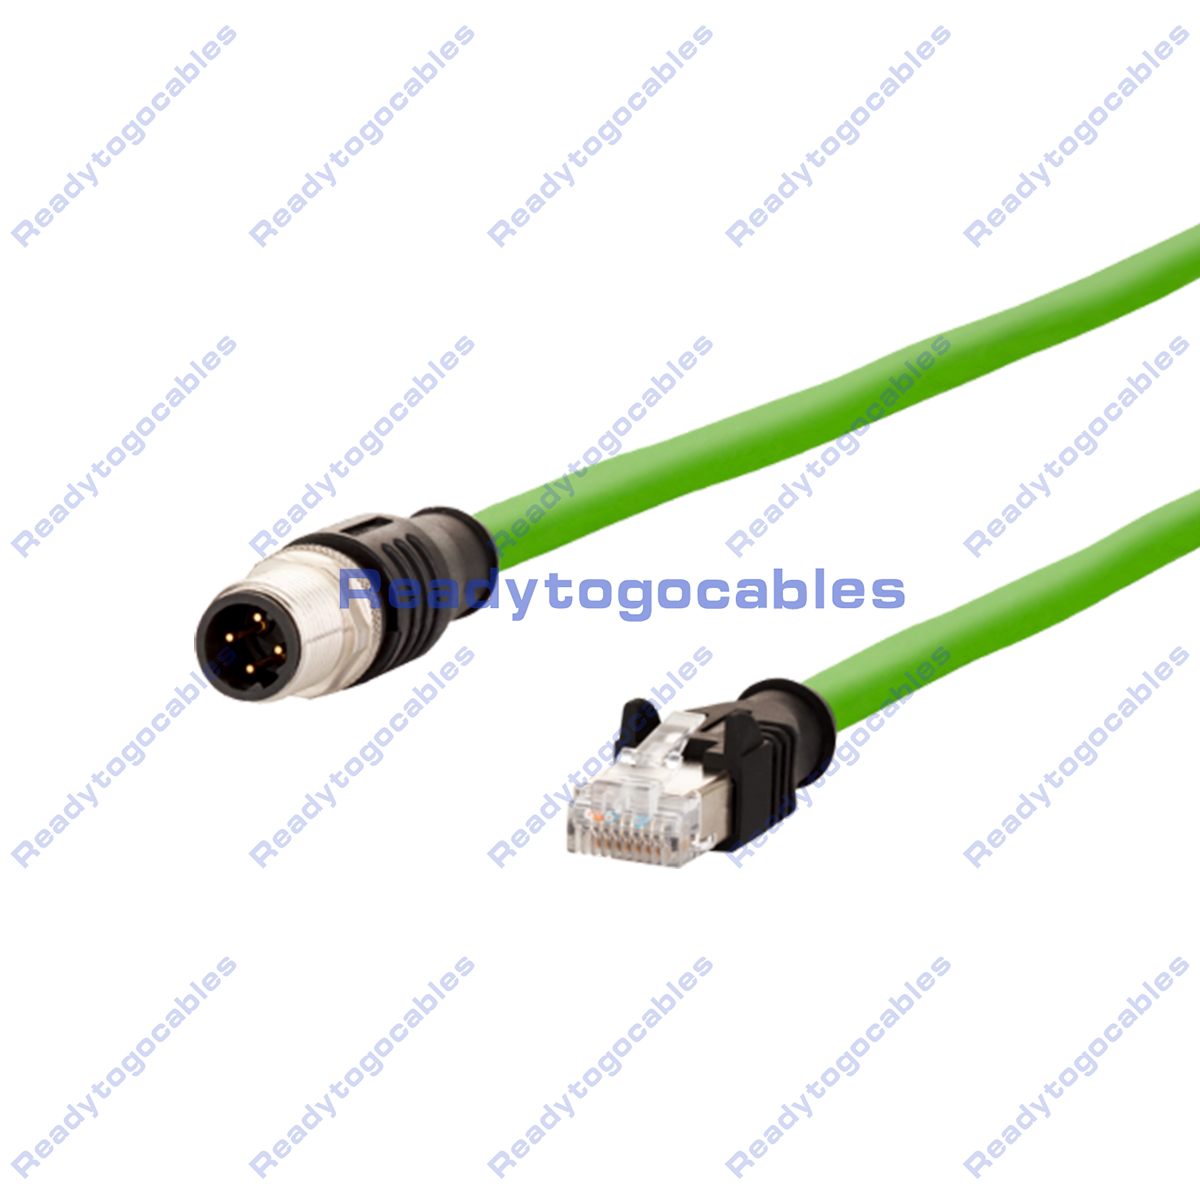 Custom M12 D-Coded Cable